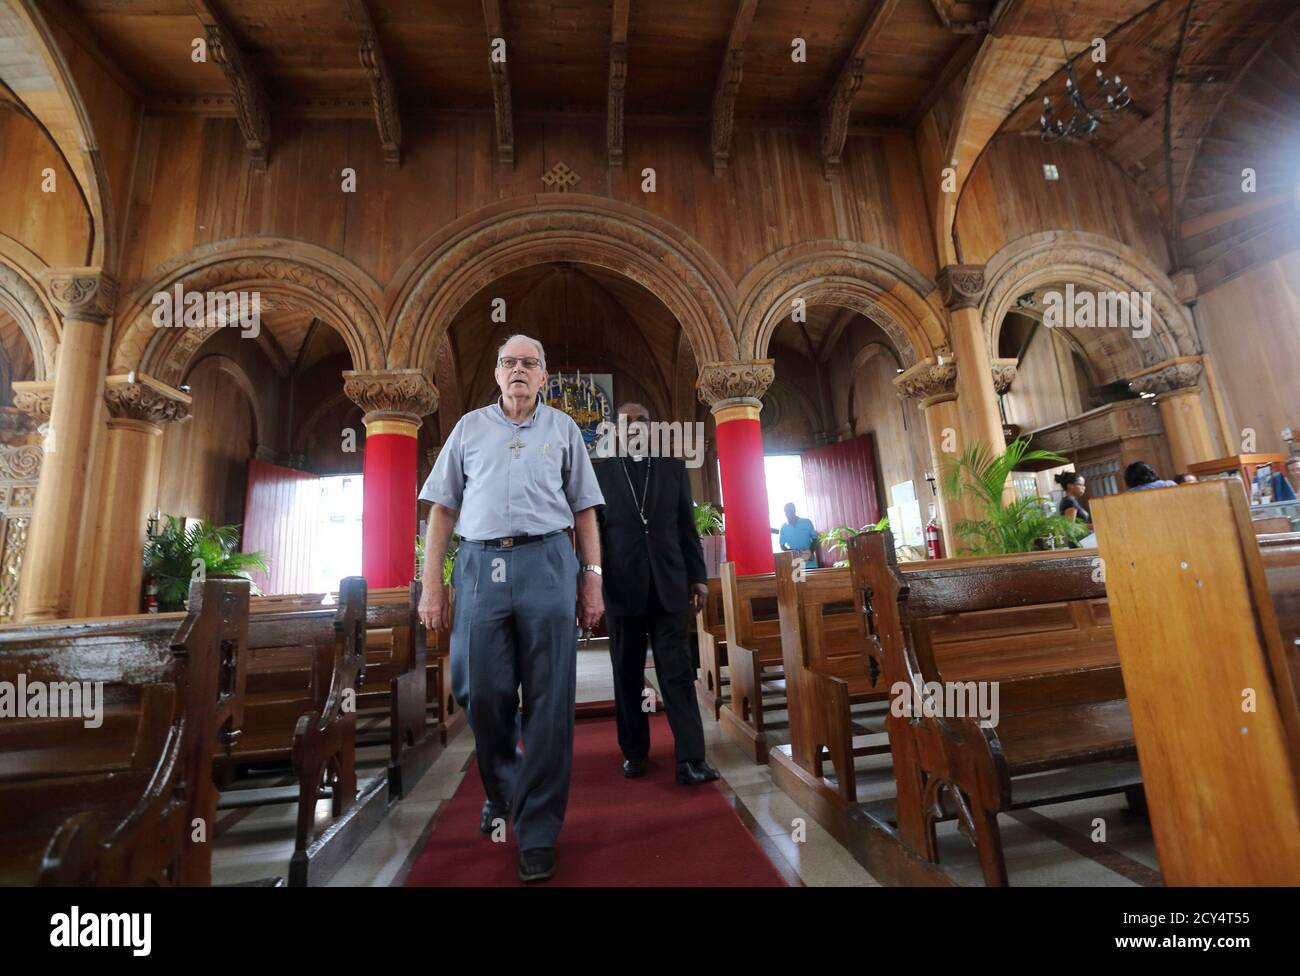 Suriname's Bishop Wim de Bekker (L) walks with Caribbean Cardinal Kelvin Felix inside the Roman Catholic St. Peter and Paul Cathedral, made entirely of wood, in Paramaribo, April 5, 2014. The cathedral, built between 1883 and 1885 of cedar and considered today the largest and tallest wooden structure in the Western Hemisphere, has interior carvings done by Maroons, runaway African slaves, after the abolition of slavery. The cathedral will be elevated to the category of Basilica Minore on April 6. REUTERS/Ranu Abhelakh (SURINAME - Tags: RELIGION) Stock Photo